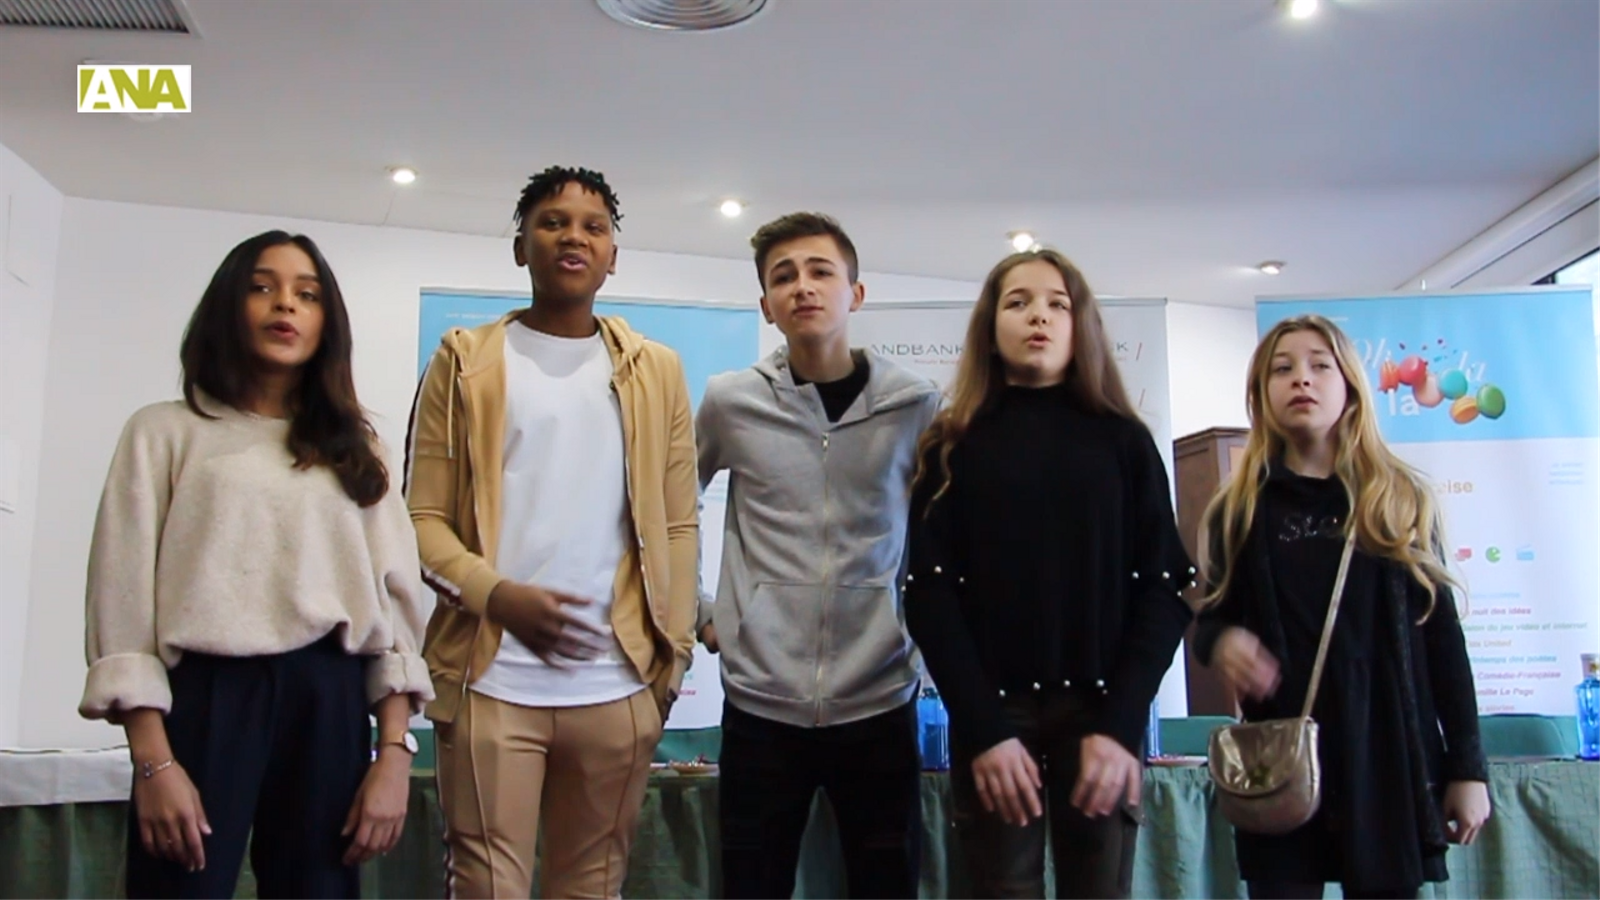 Els Kids United interpreten una part de l'èxit 'On ecrit sur les murs'